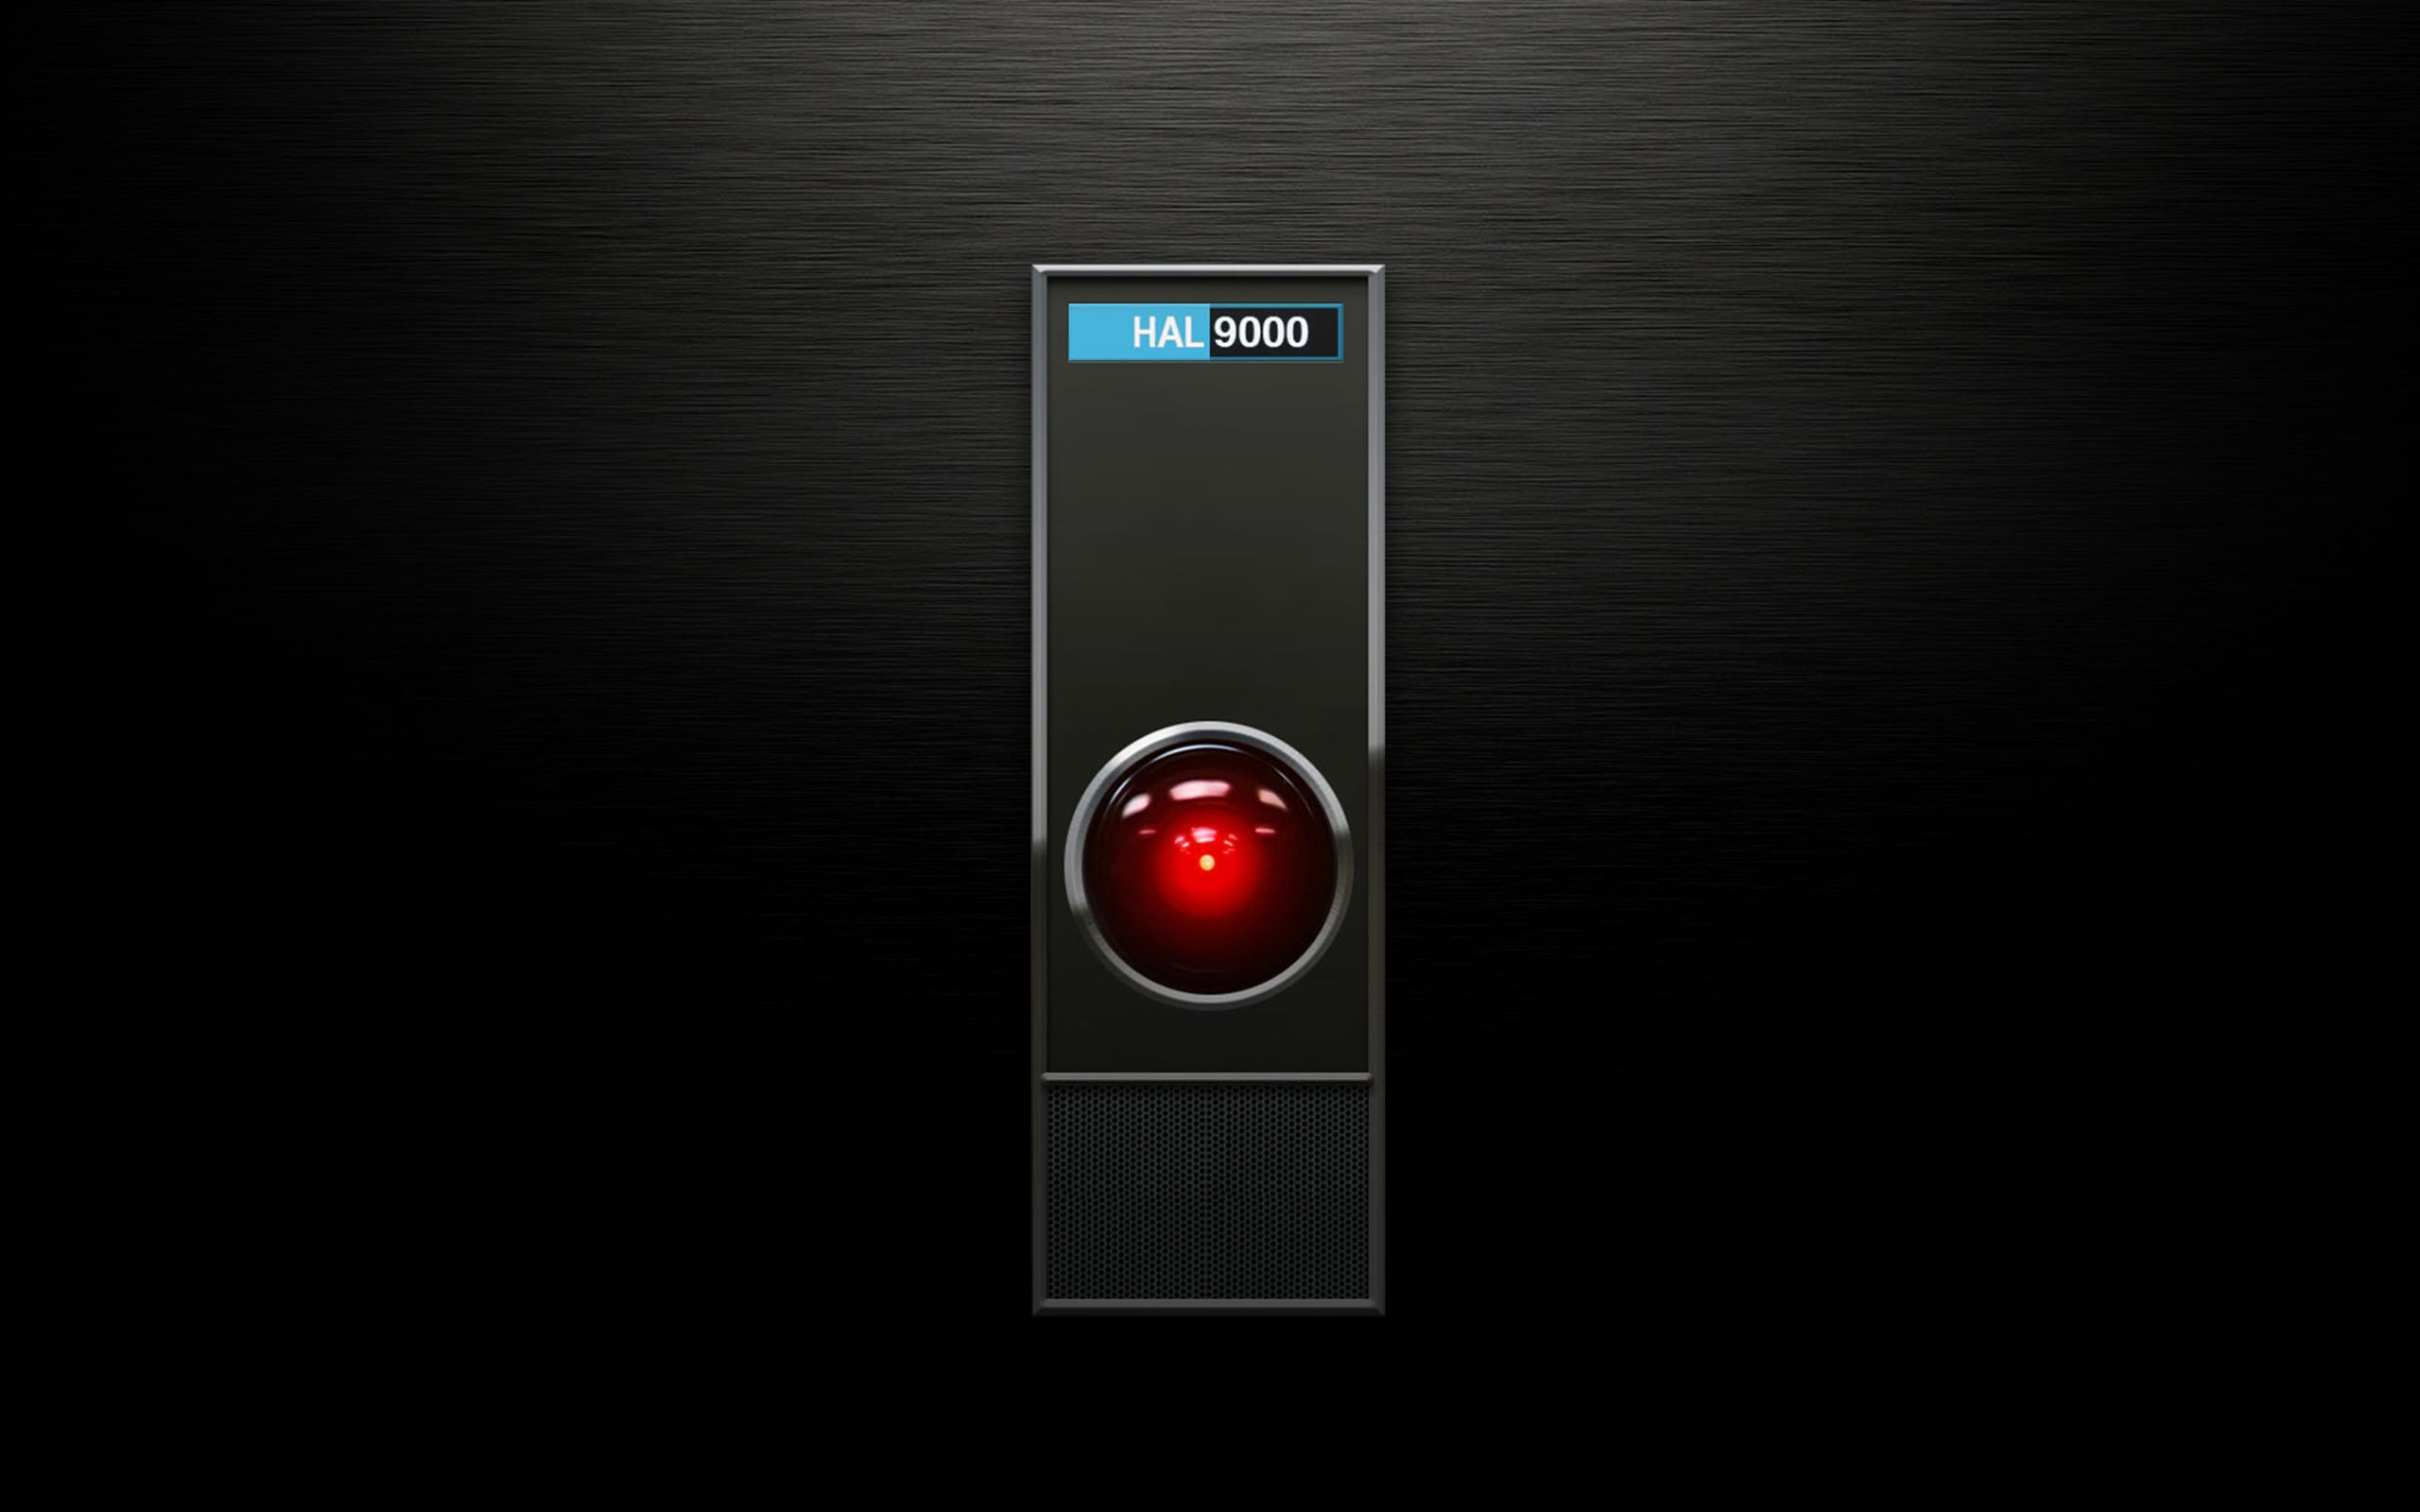 2001 A Space Odyssey Wallpapers